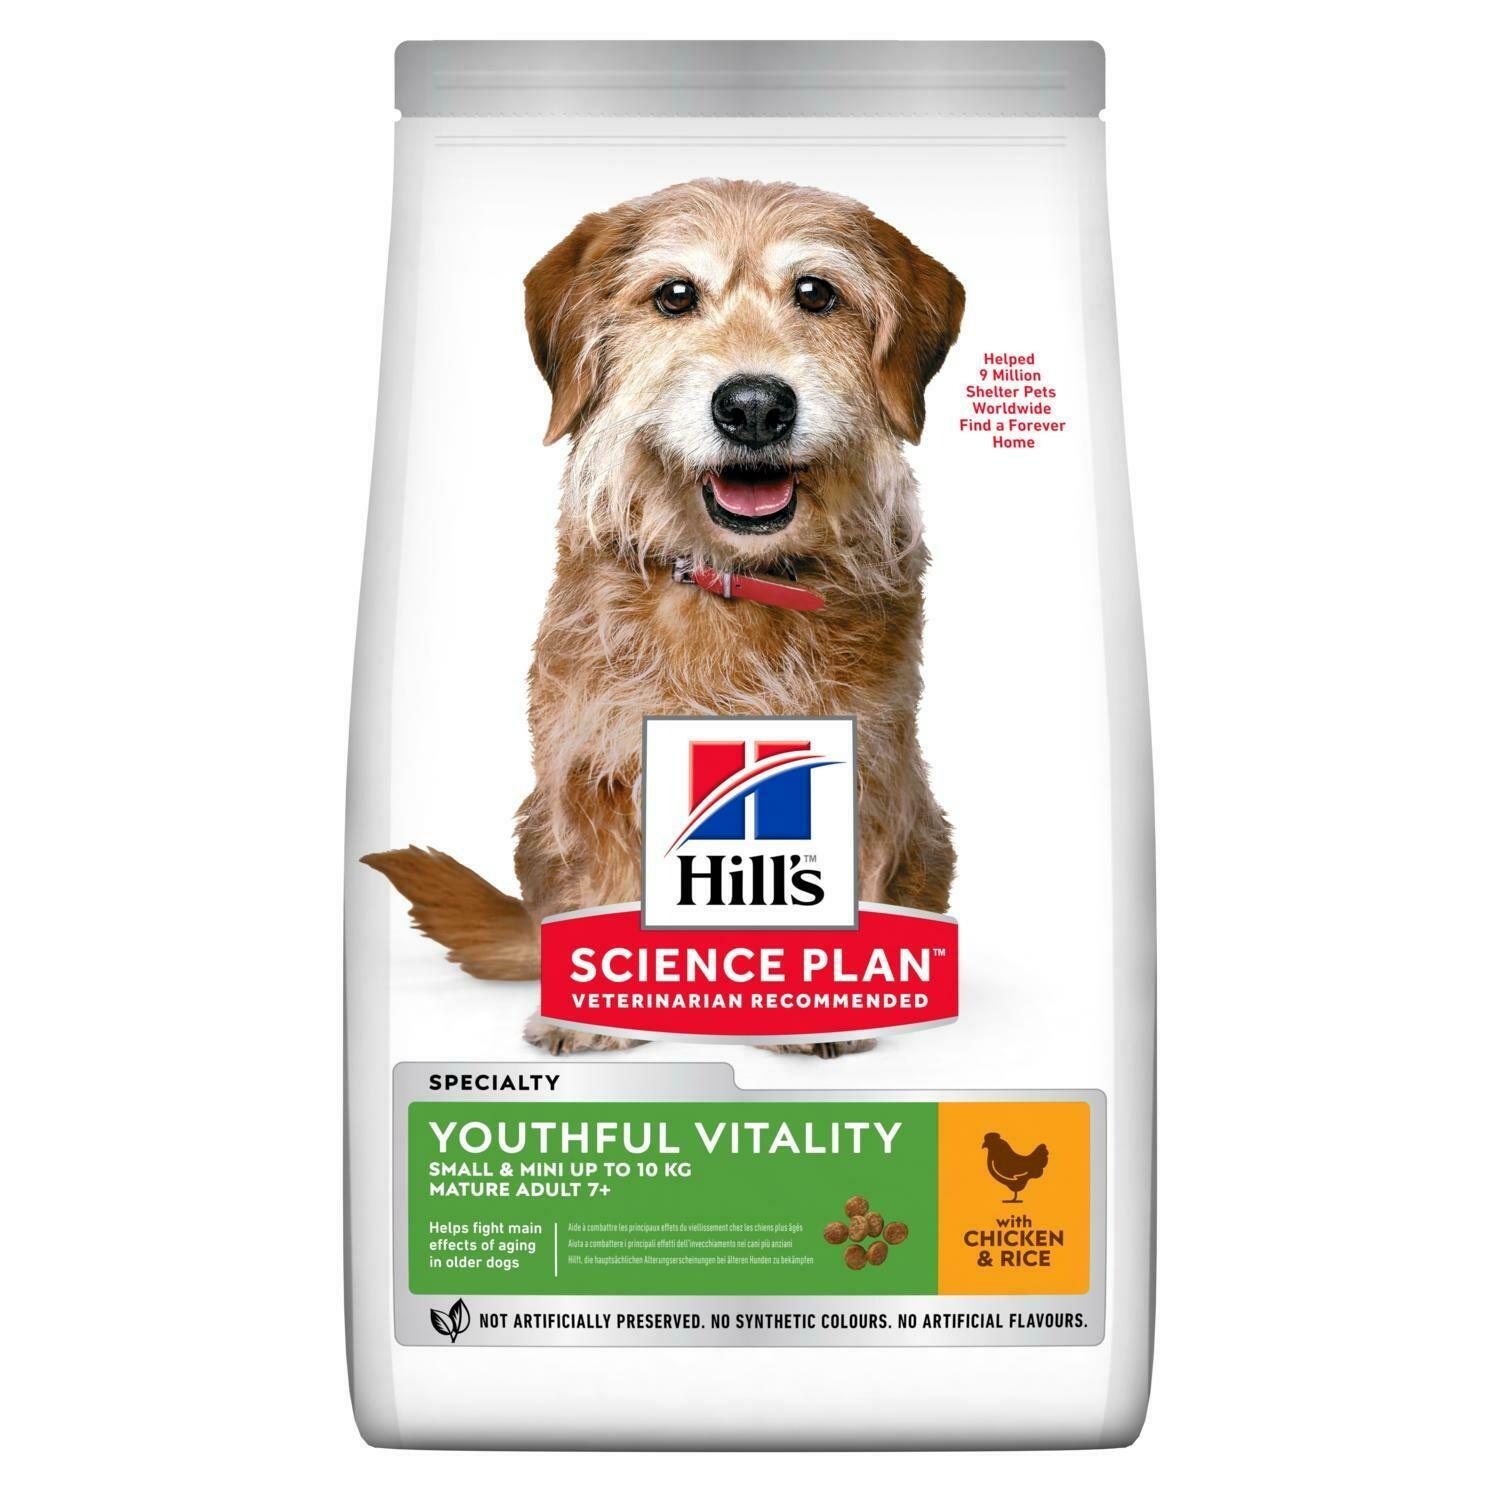 Hill's Science Plan Adult Youthful Vitality 7+ Small & Mini Breed Chicken Flavour